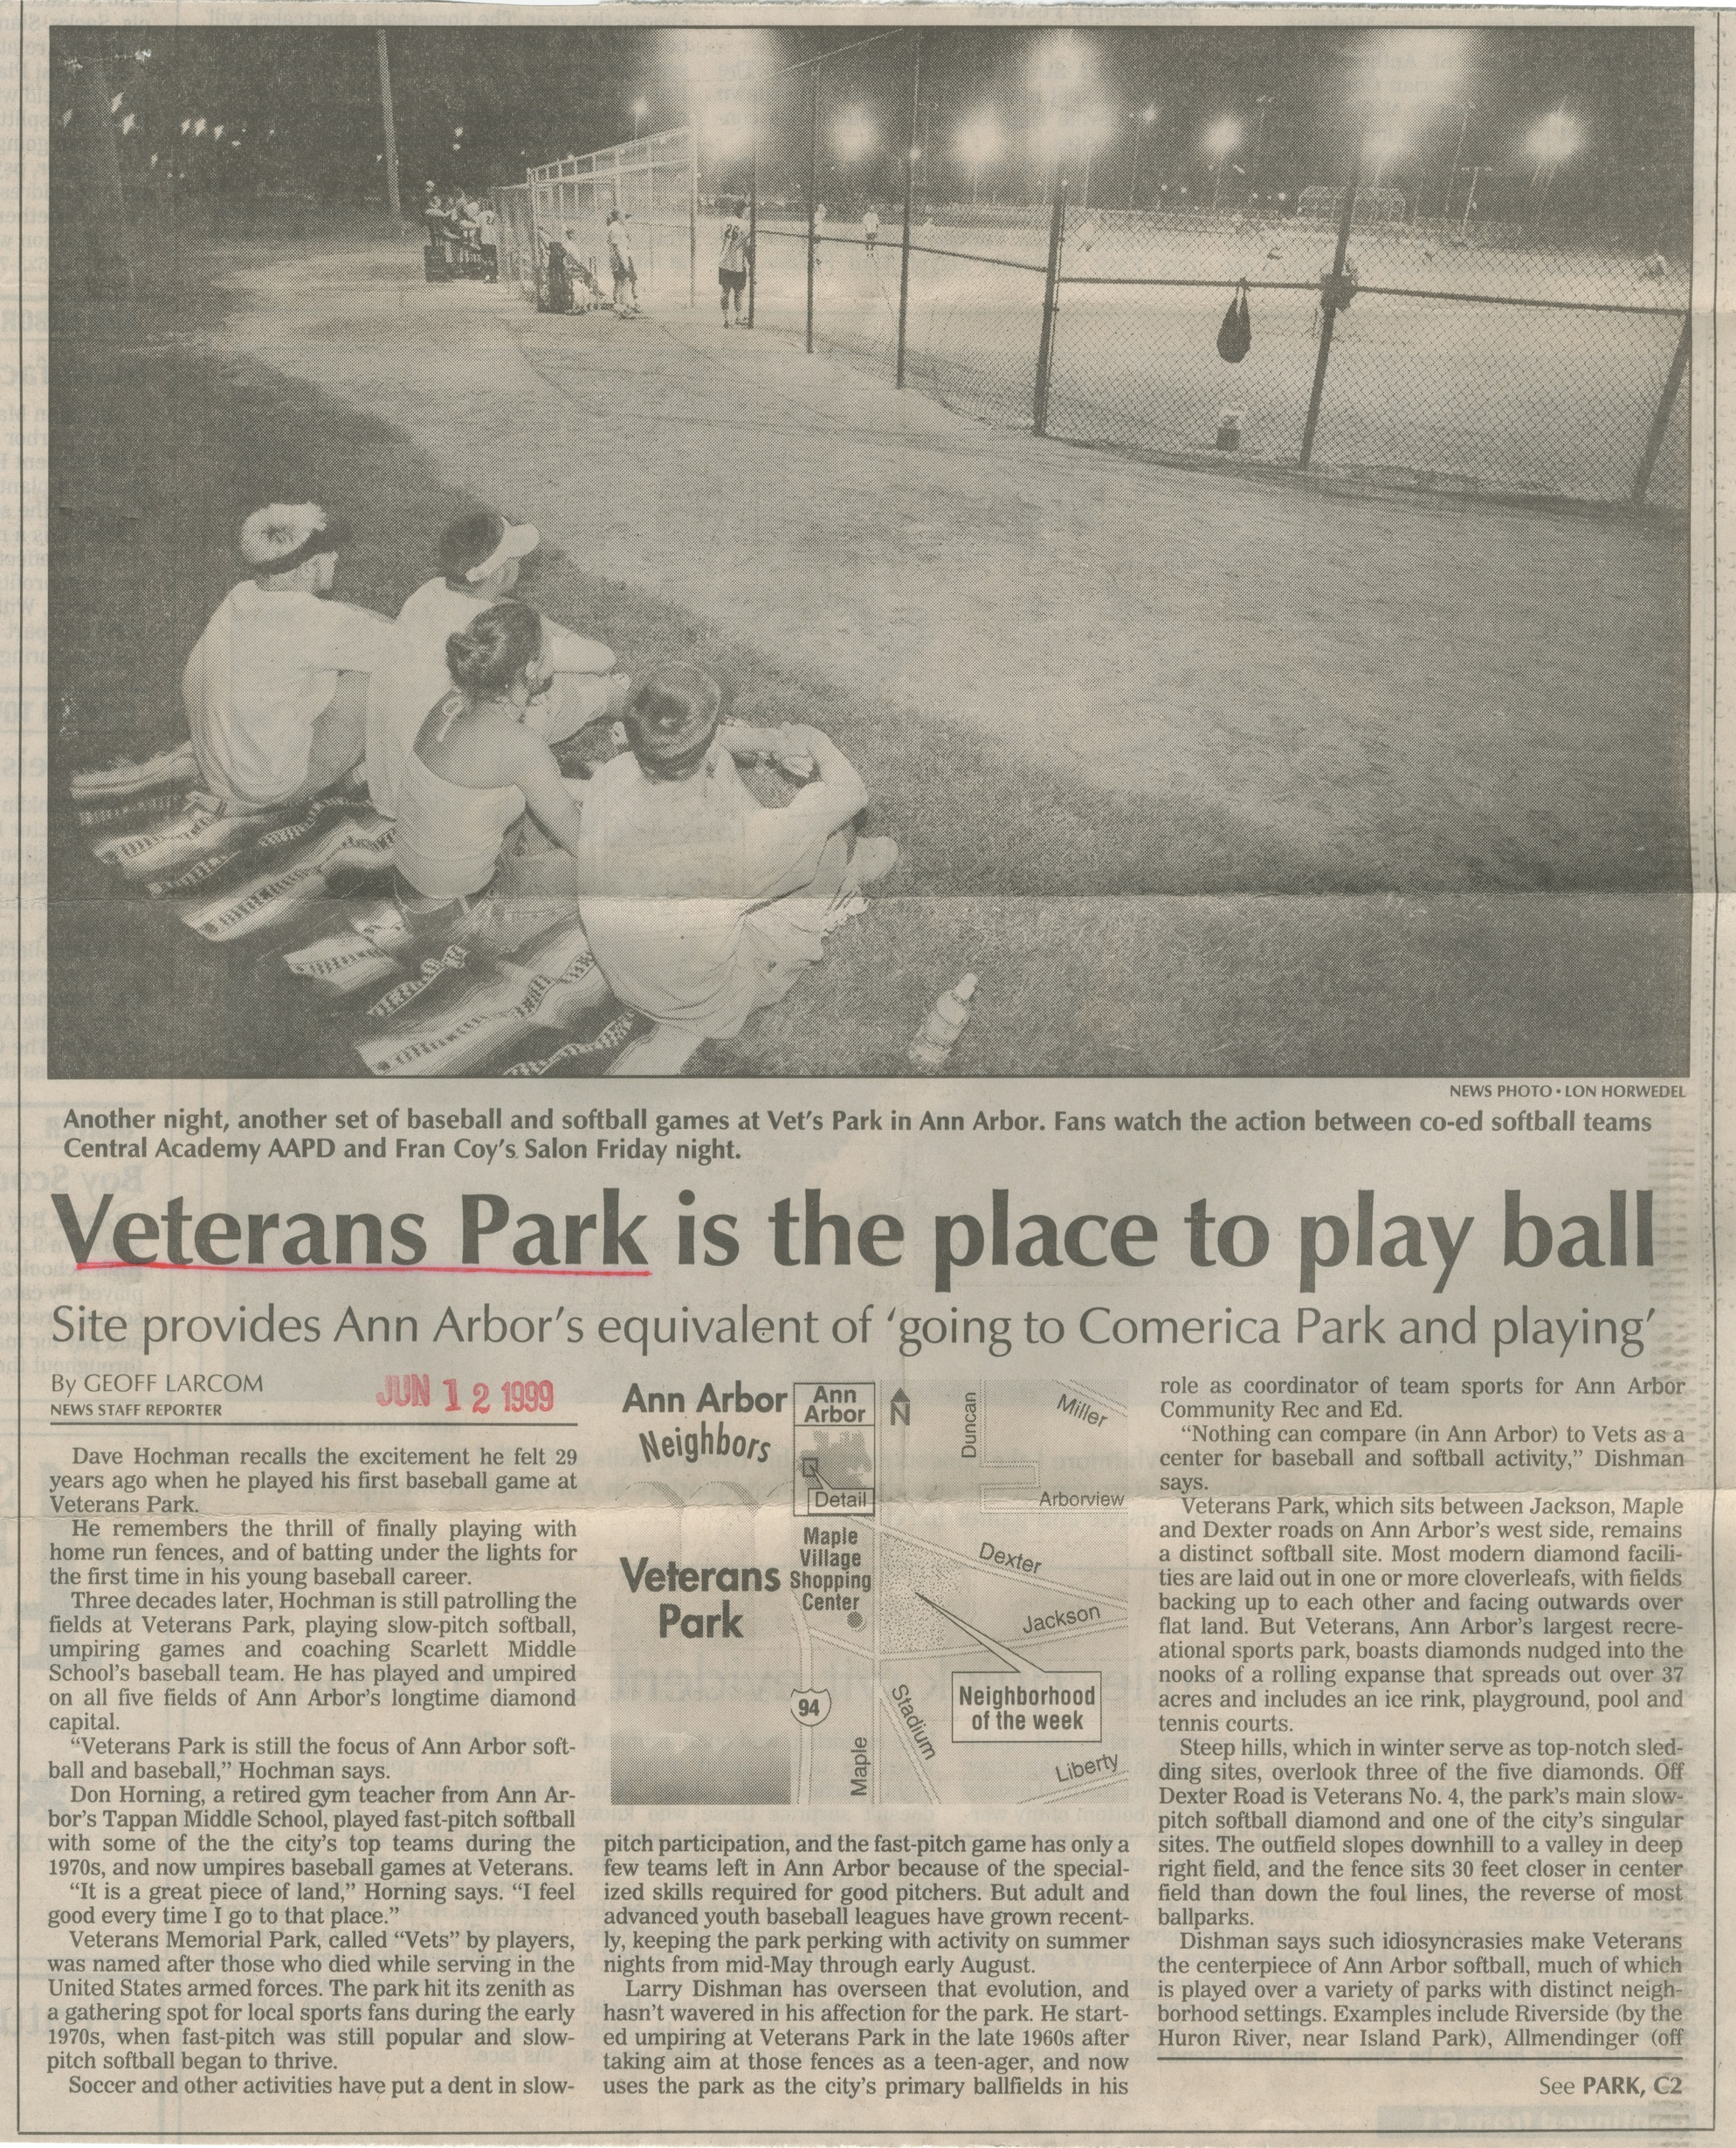 Veterans Park Is The Place To Play Ball image